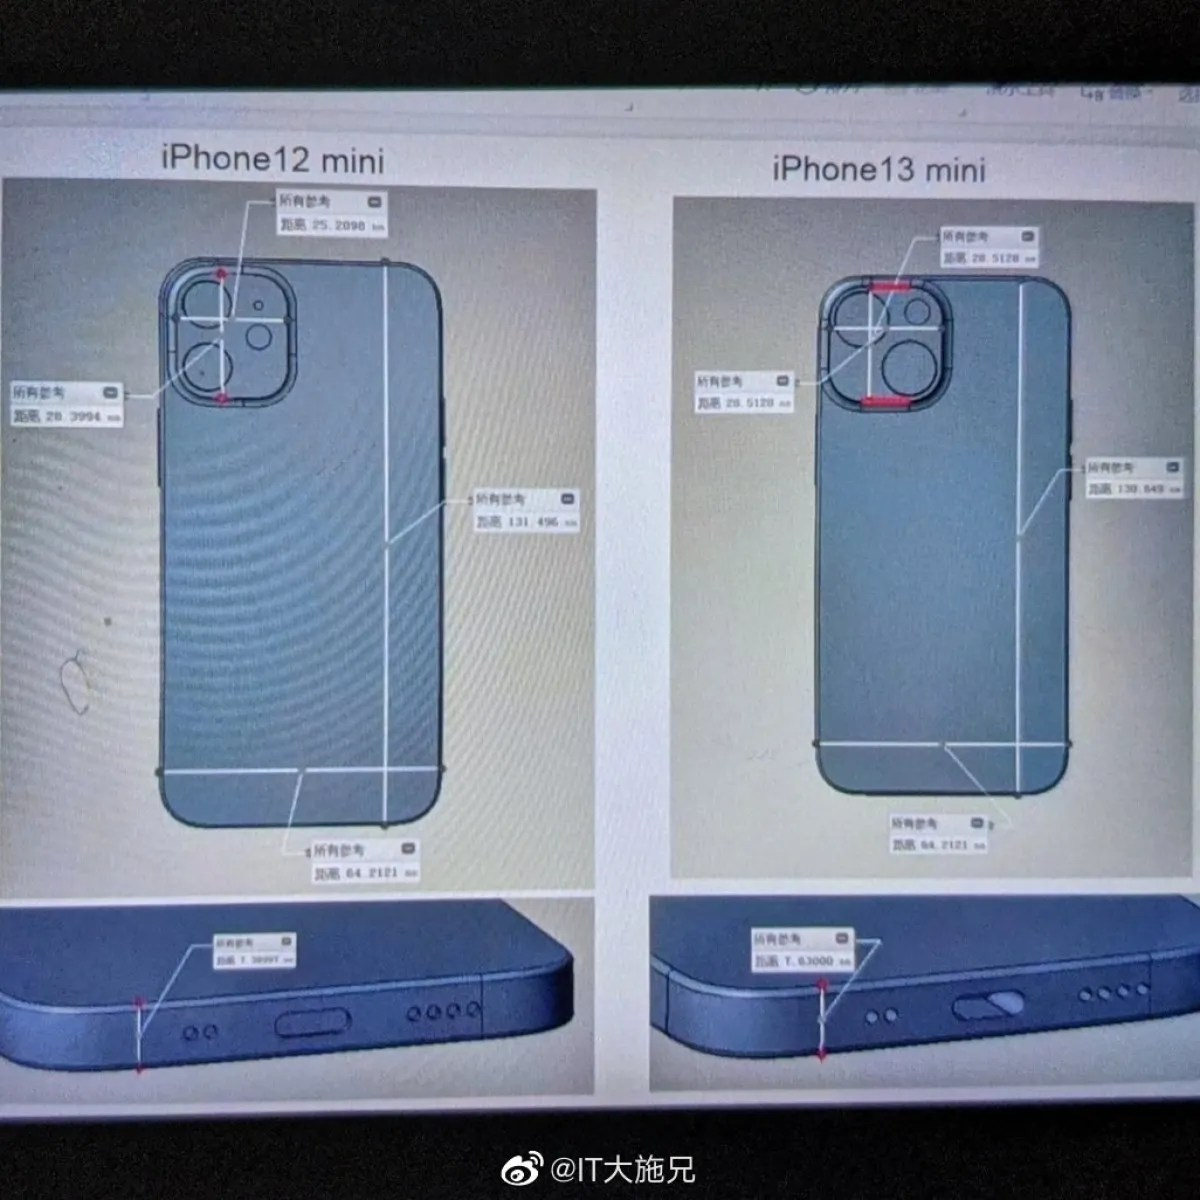 Iphone 13 and 13 mini. Iphone 13 Mini Leaks Reveal That Its Design Is Similar To The Iphone 12 Mini